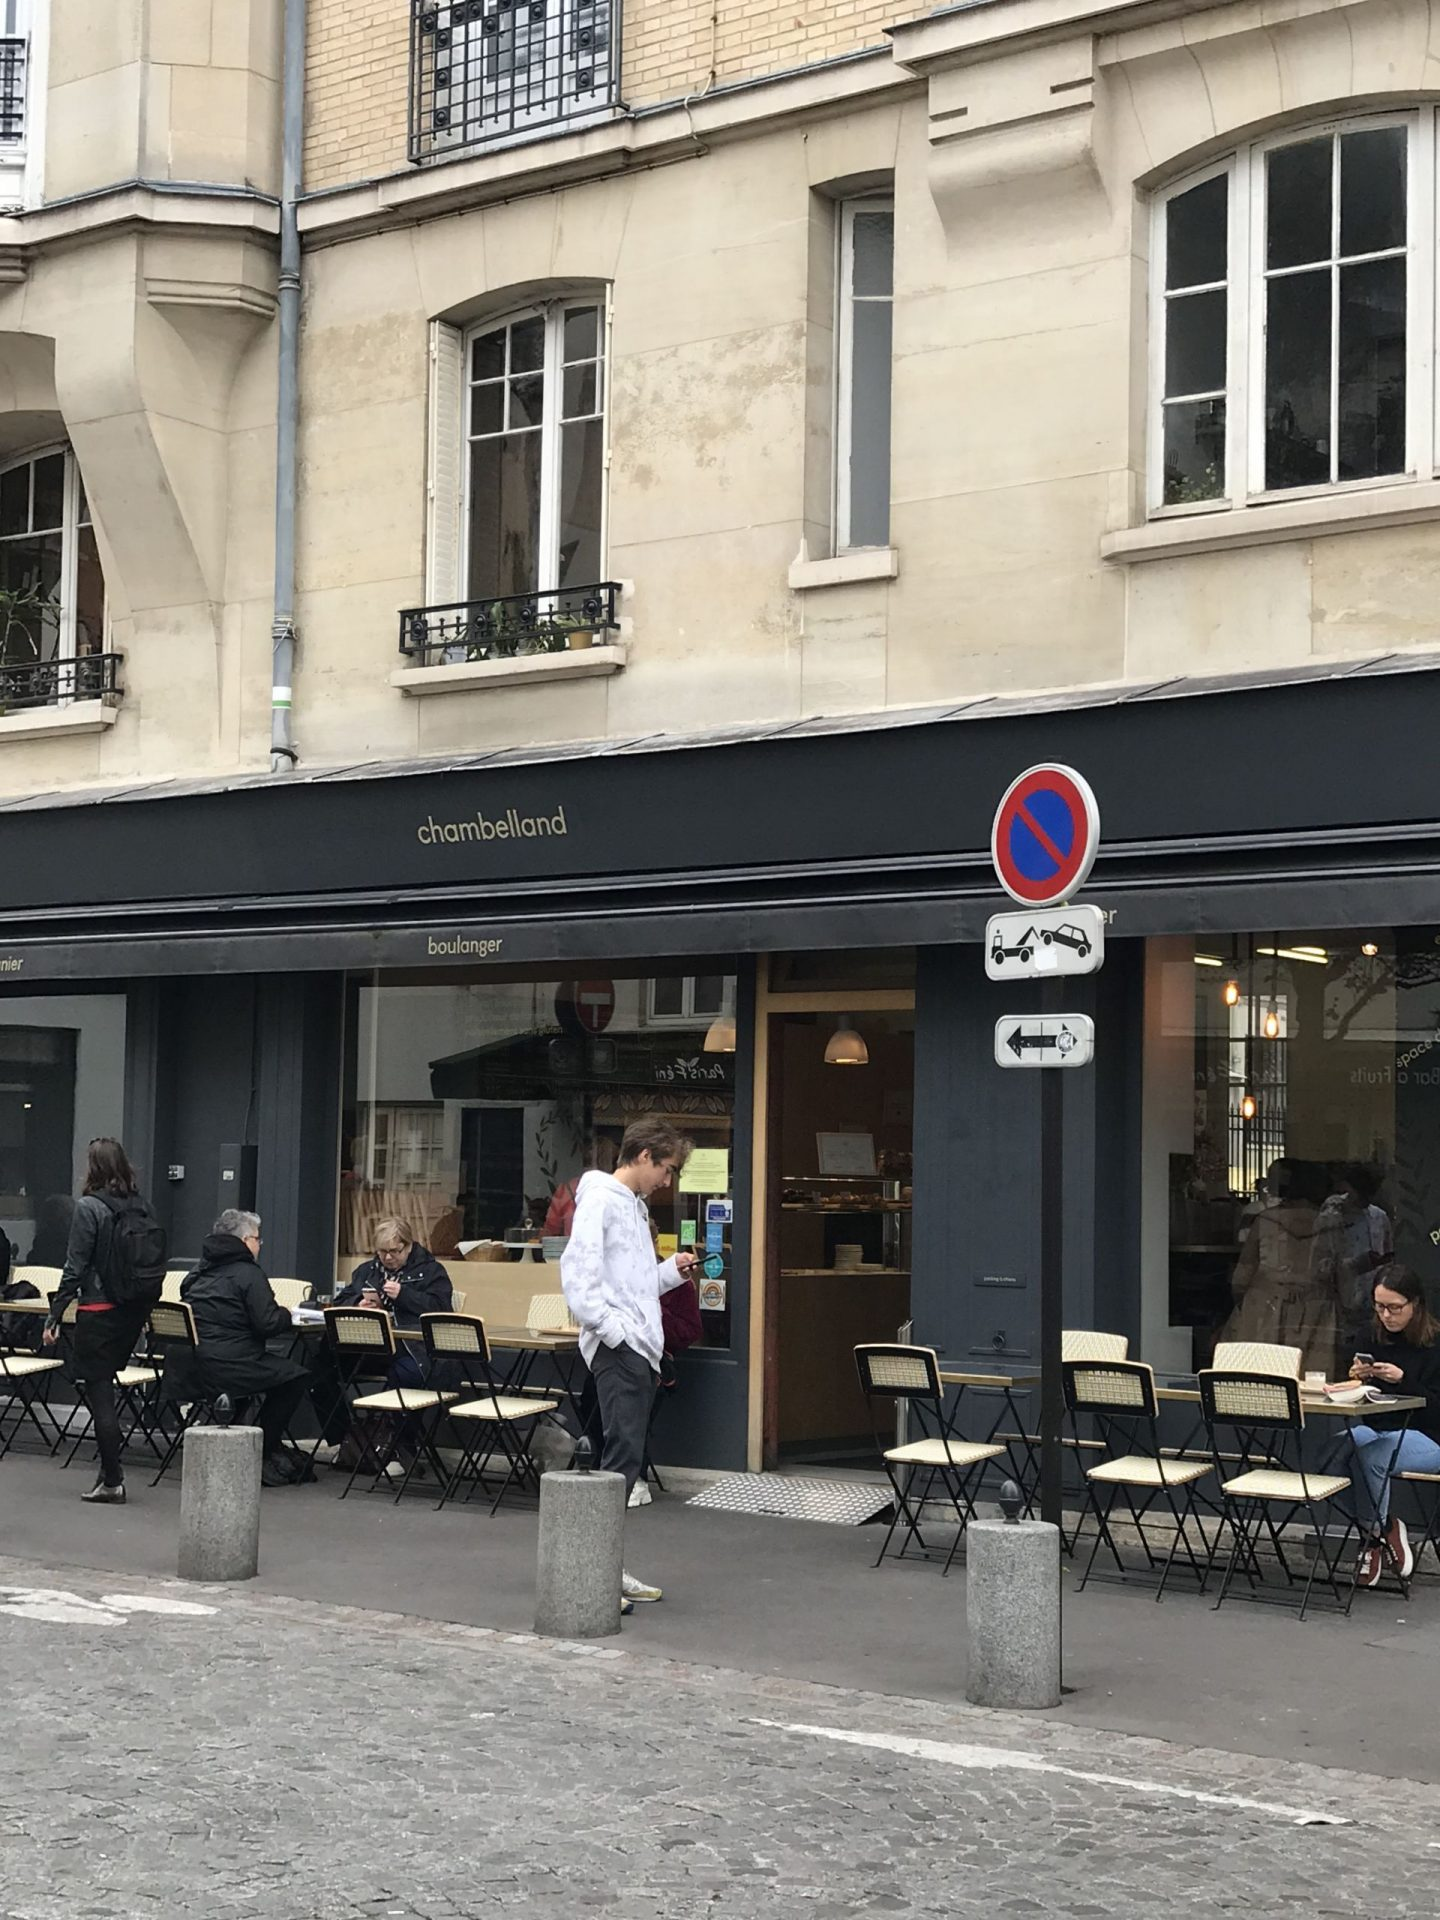 Solo dining at Chambelland, Paris – gluten free pastries, eh oui!